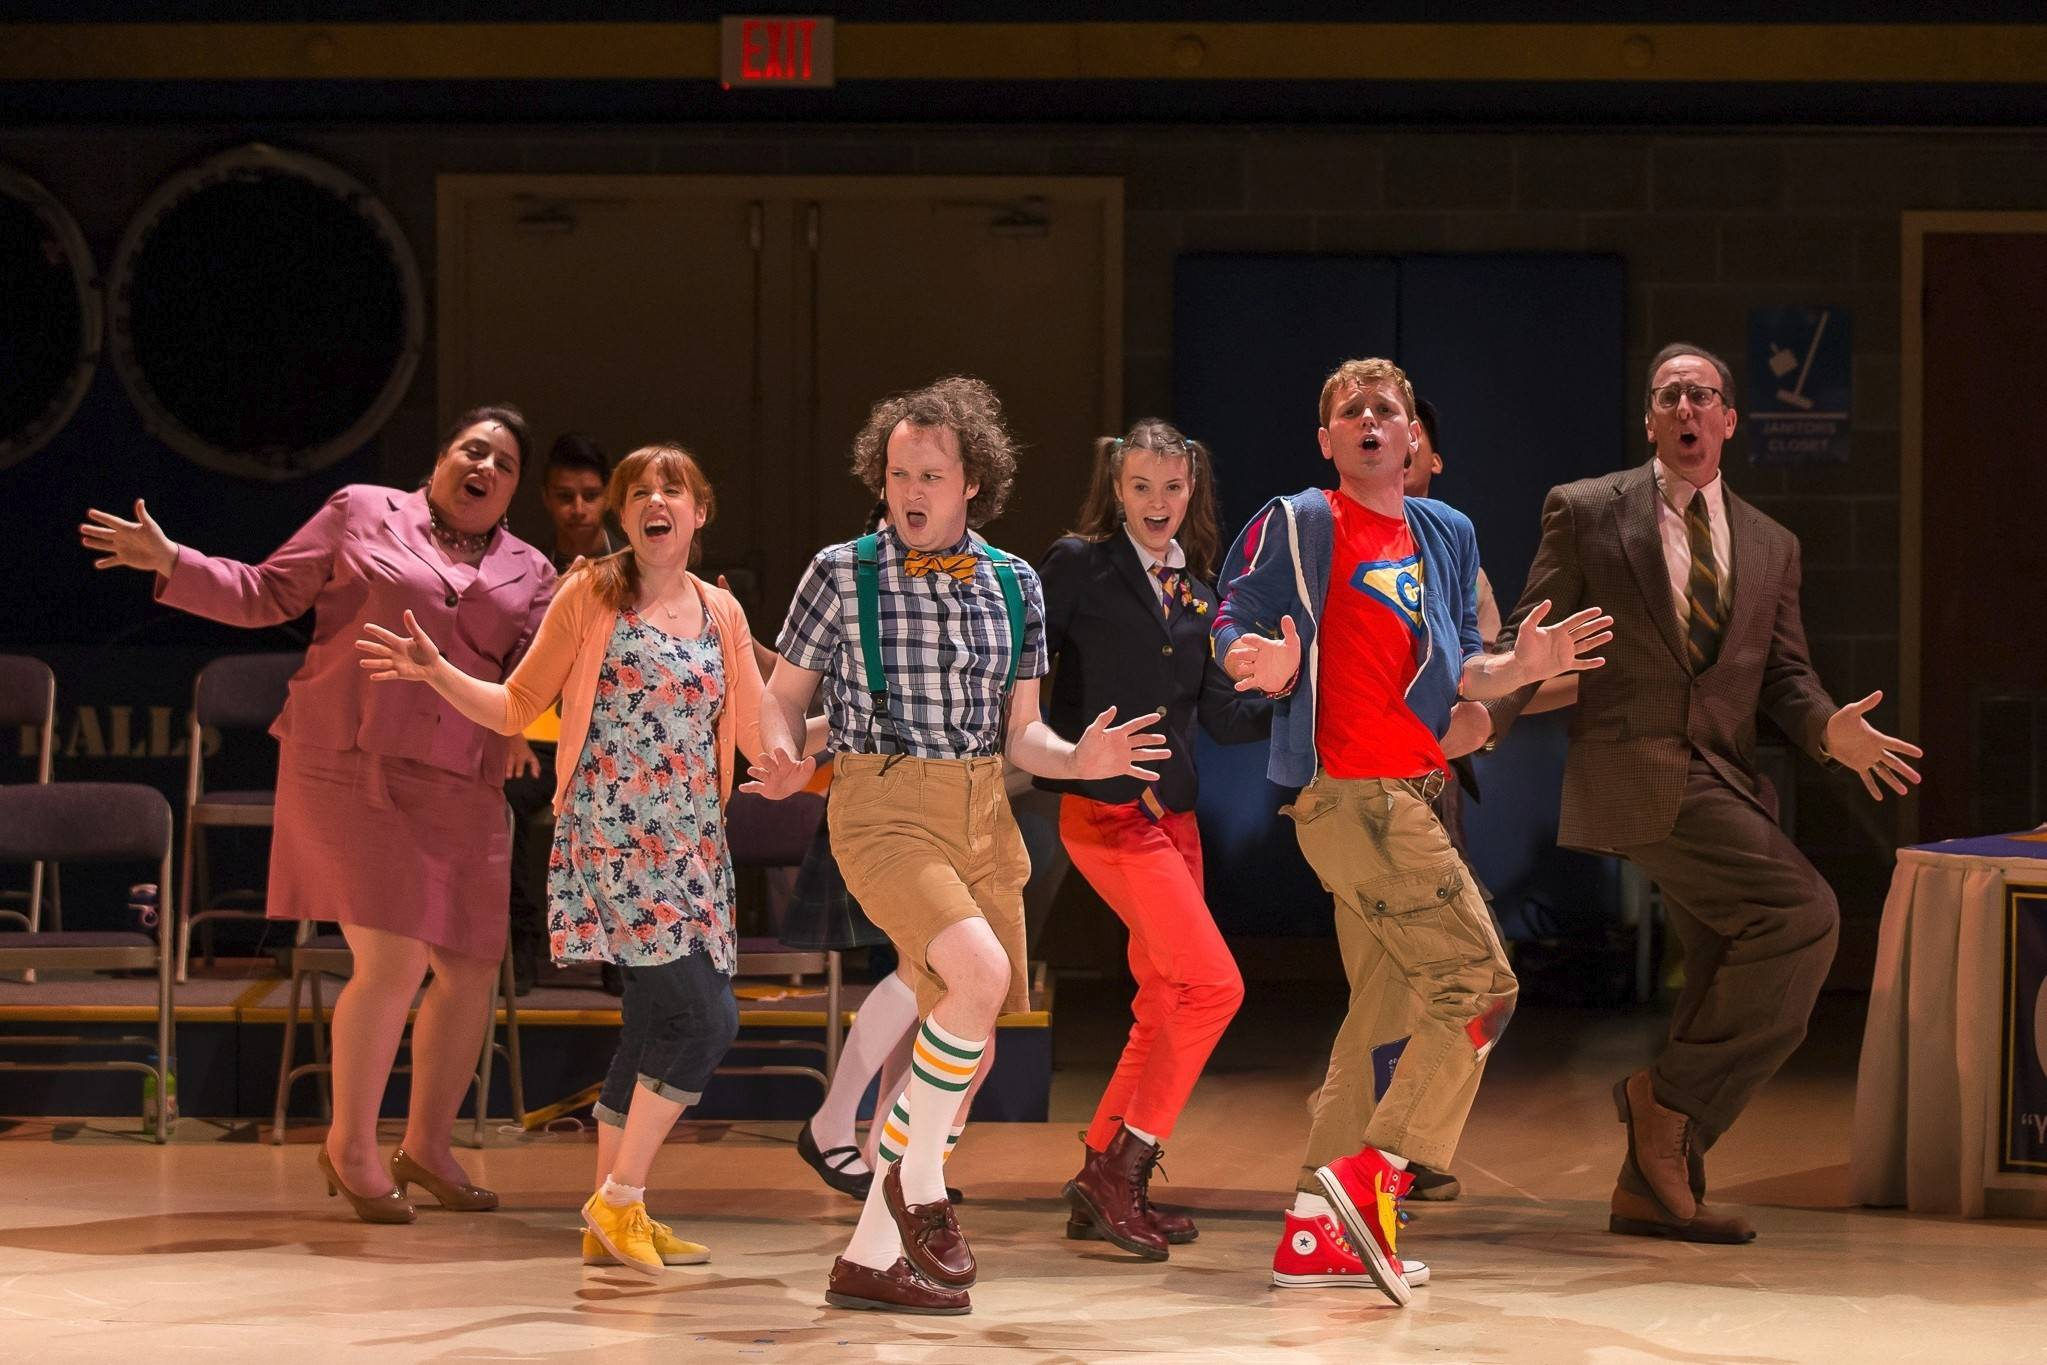 "William Barfée (Eli Branson, center) leads the cast in a song about his magic spelling foot in ""The 25th Annual Putnam County Spelling Bee"" at Drury Lane Theatre in Oakbrook Terrace."